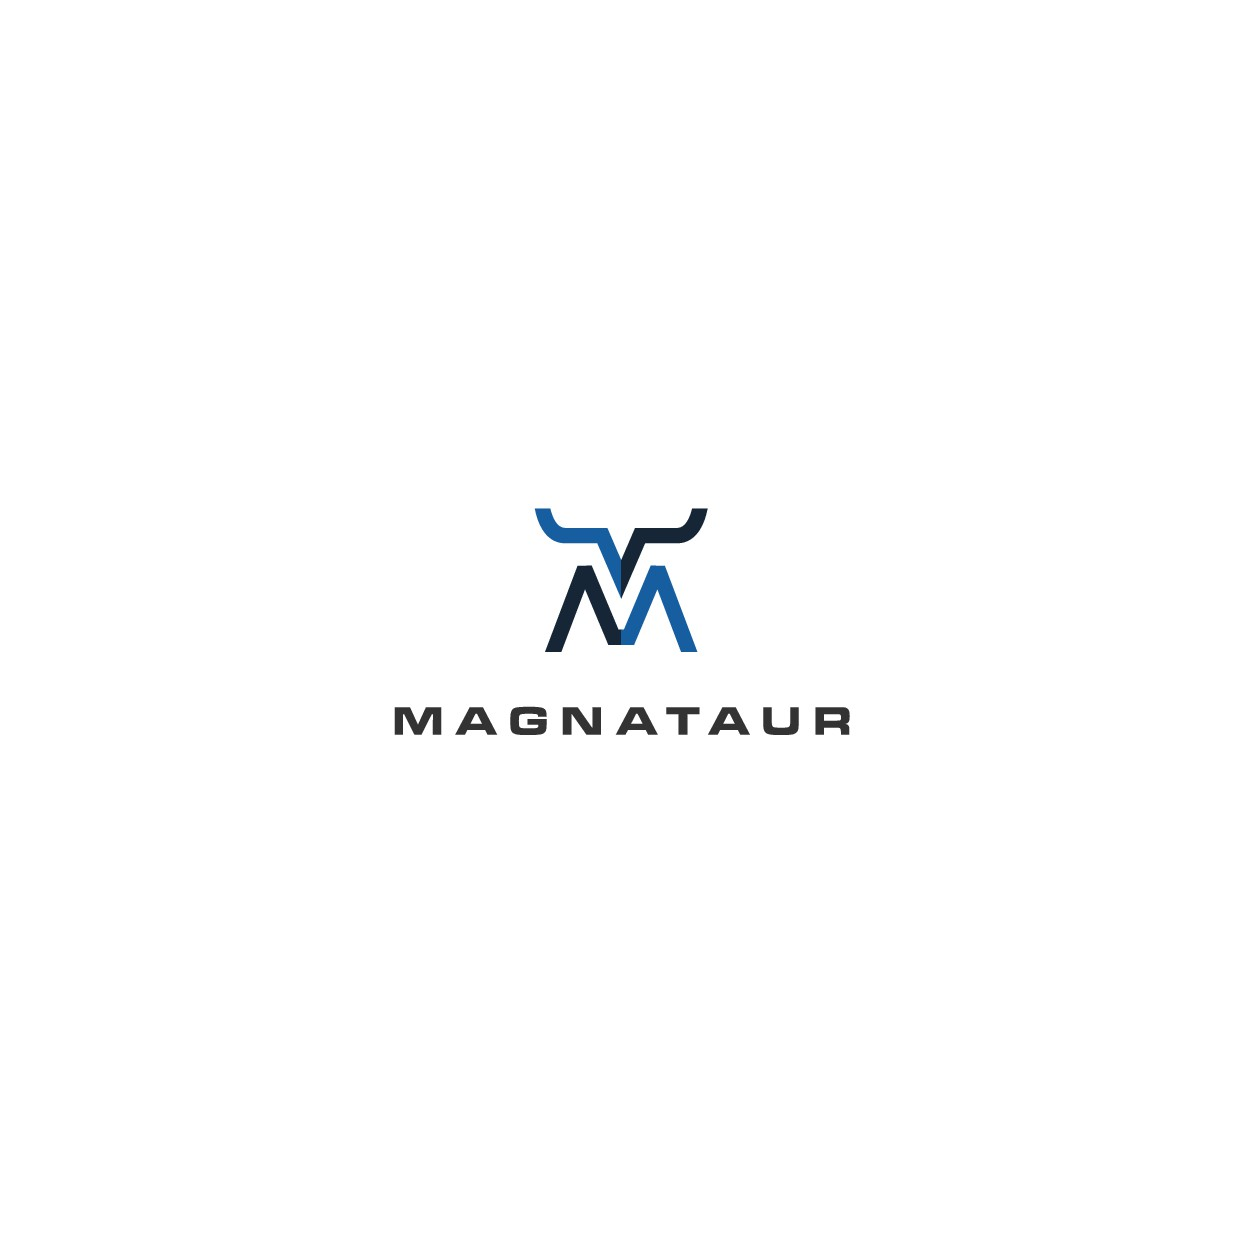 Magnatur - Transforming IT organizations from service providers to profit centers